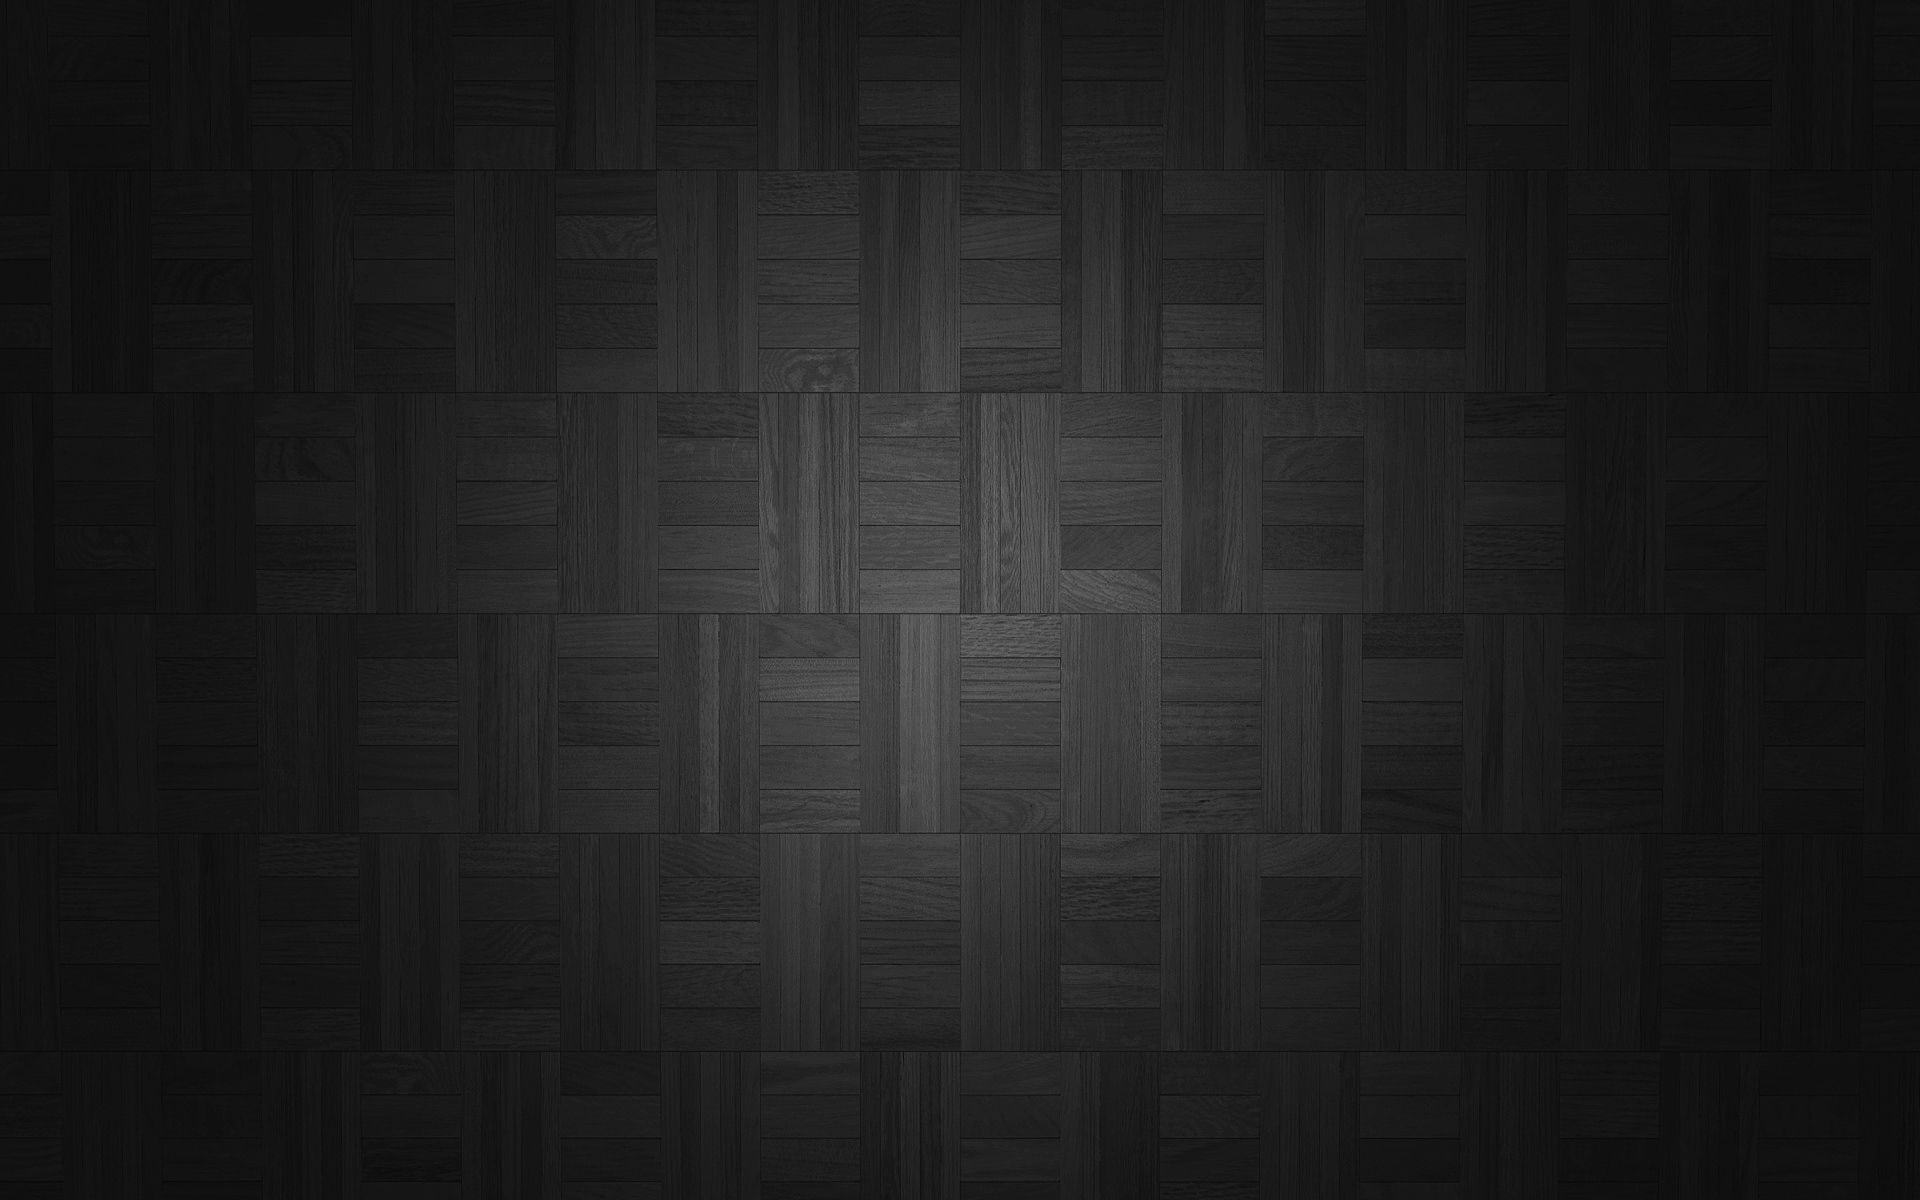 149511 download wallpaper Texture, Textures, Background, Dark, Form, Squares screensavers and pictures for free